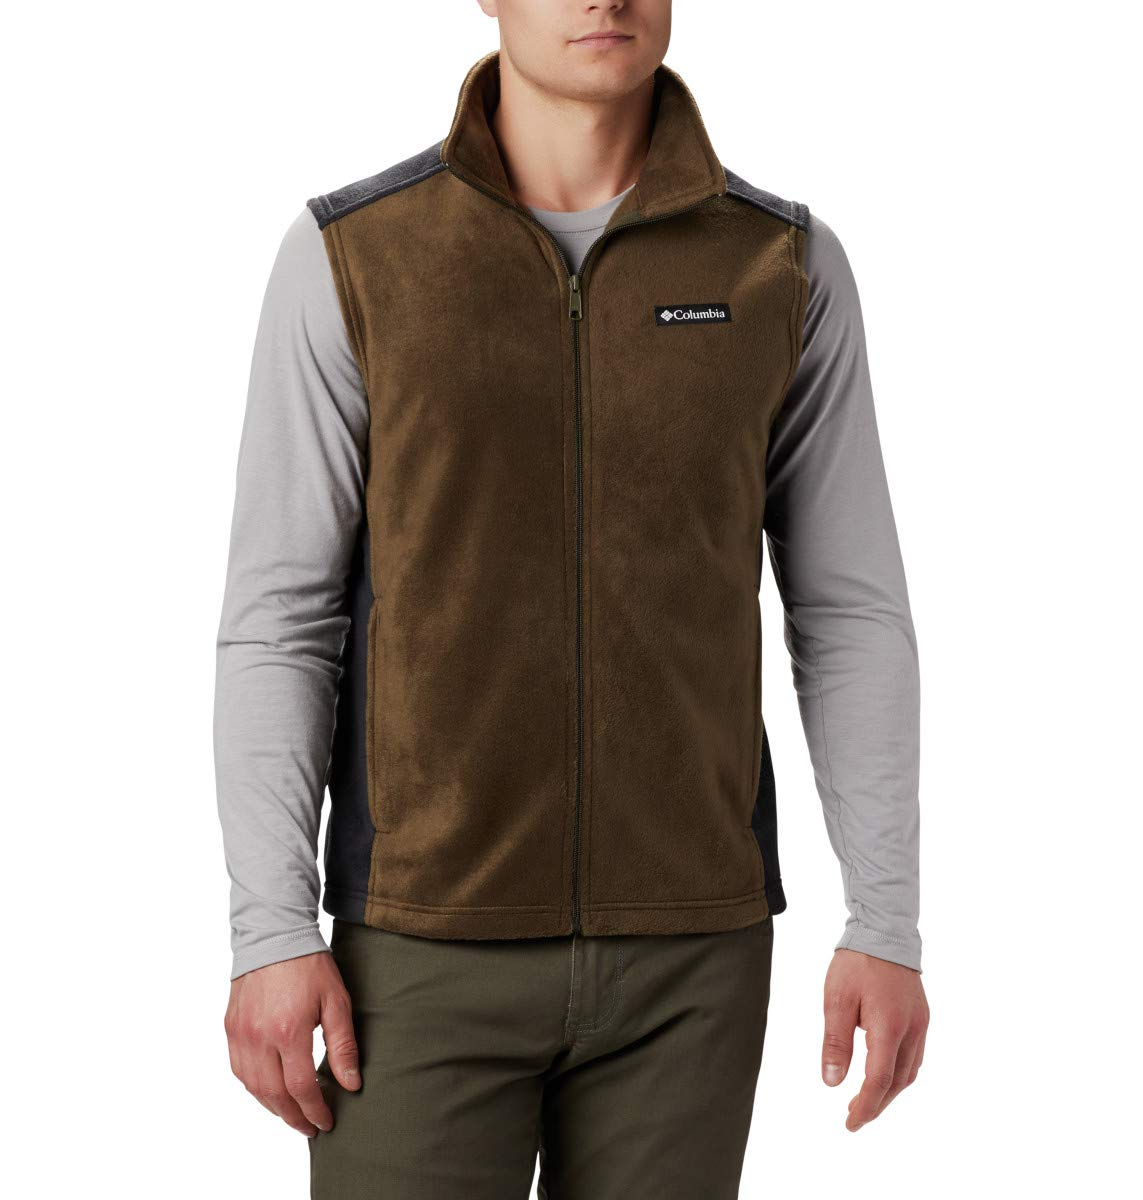 Columbia Men's Steens Mountain Vest, Olive Green, Black, Large by Columbia